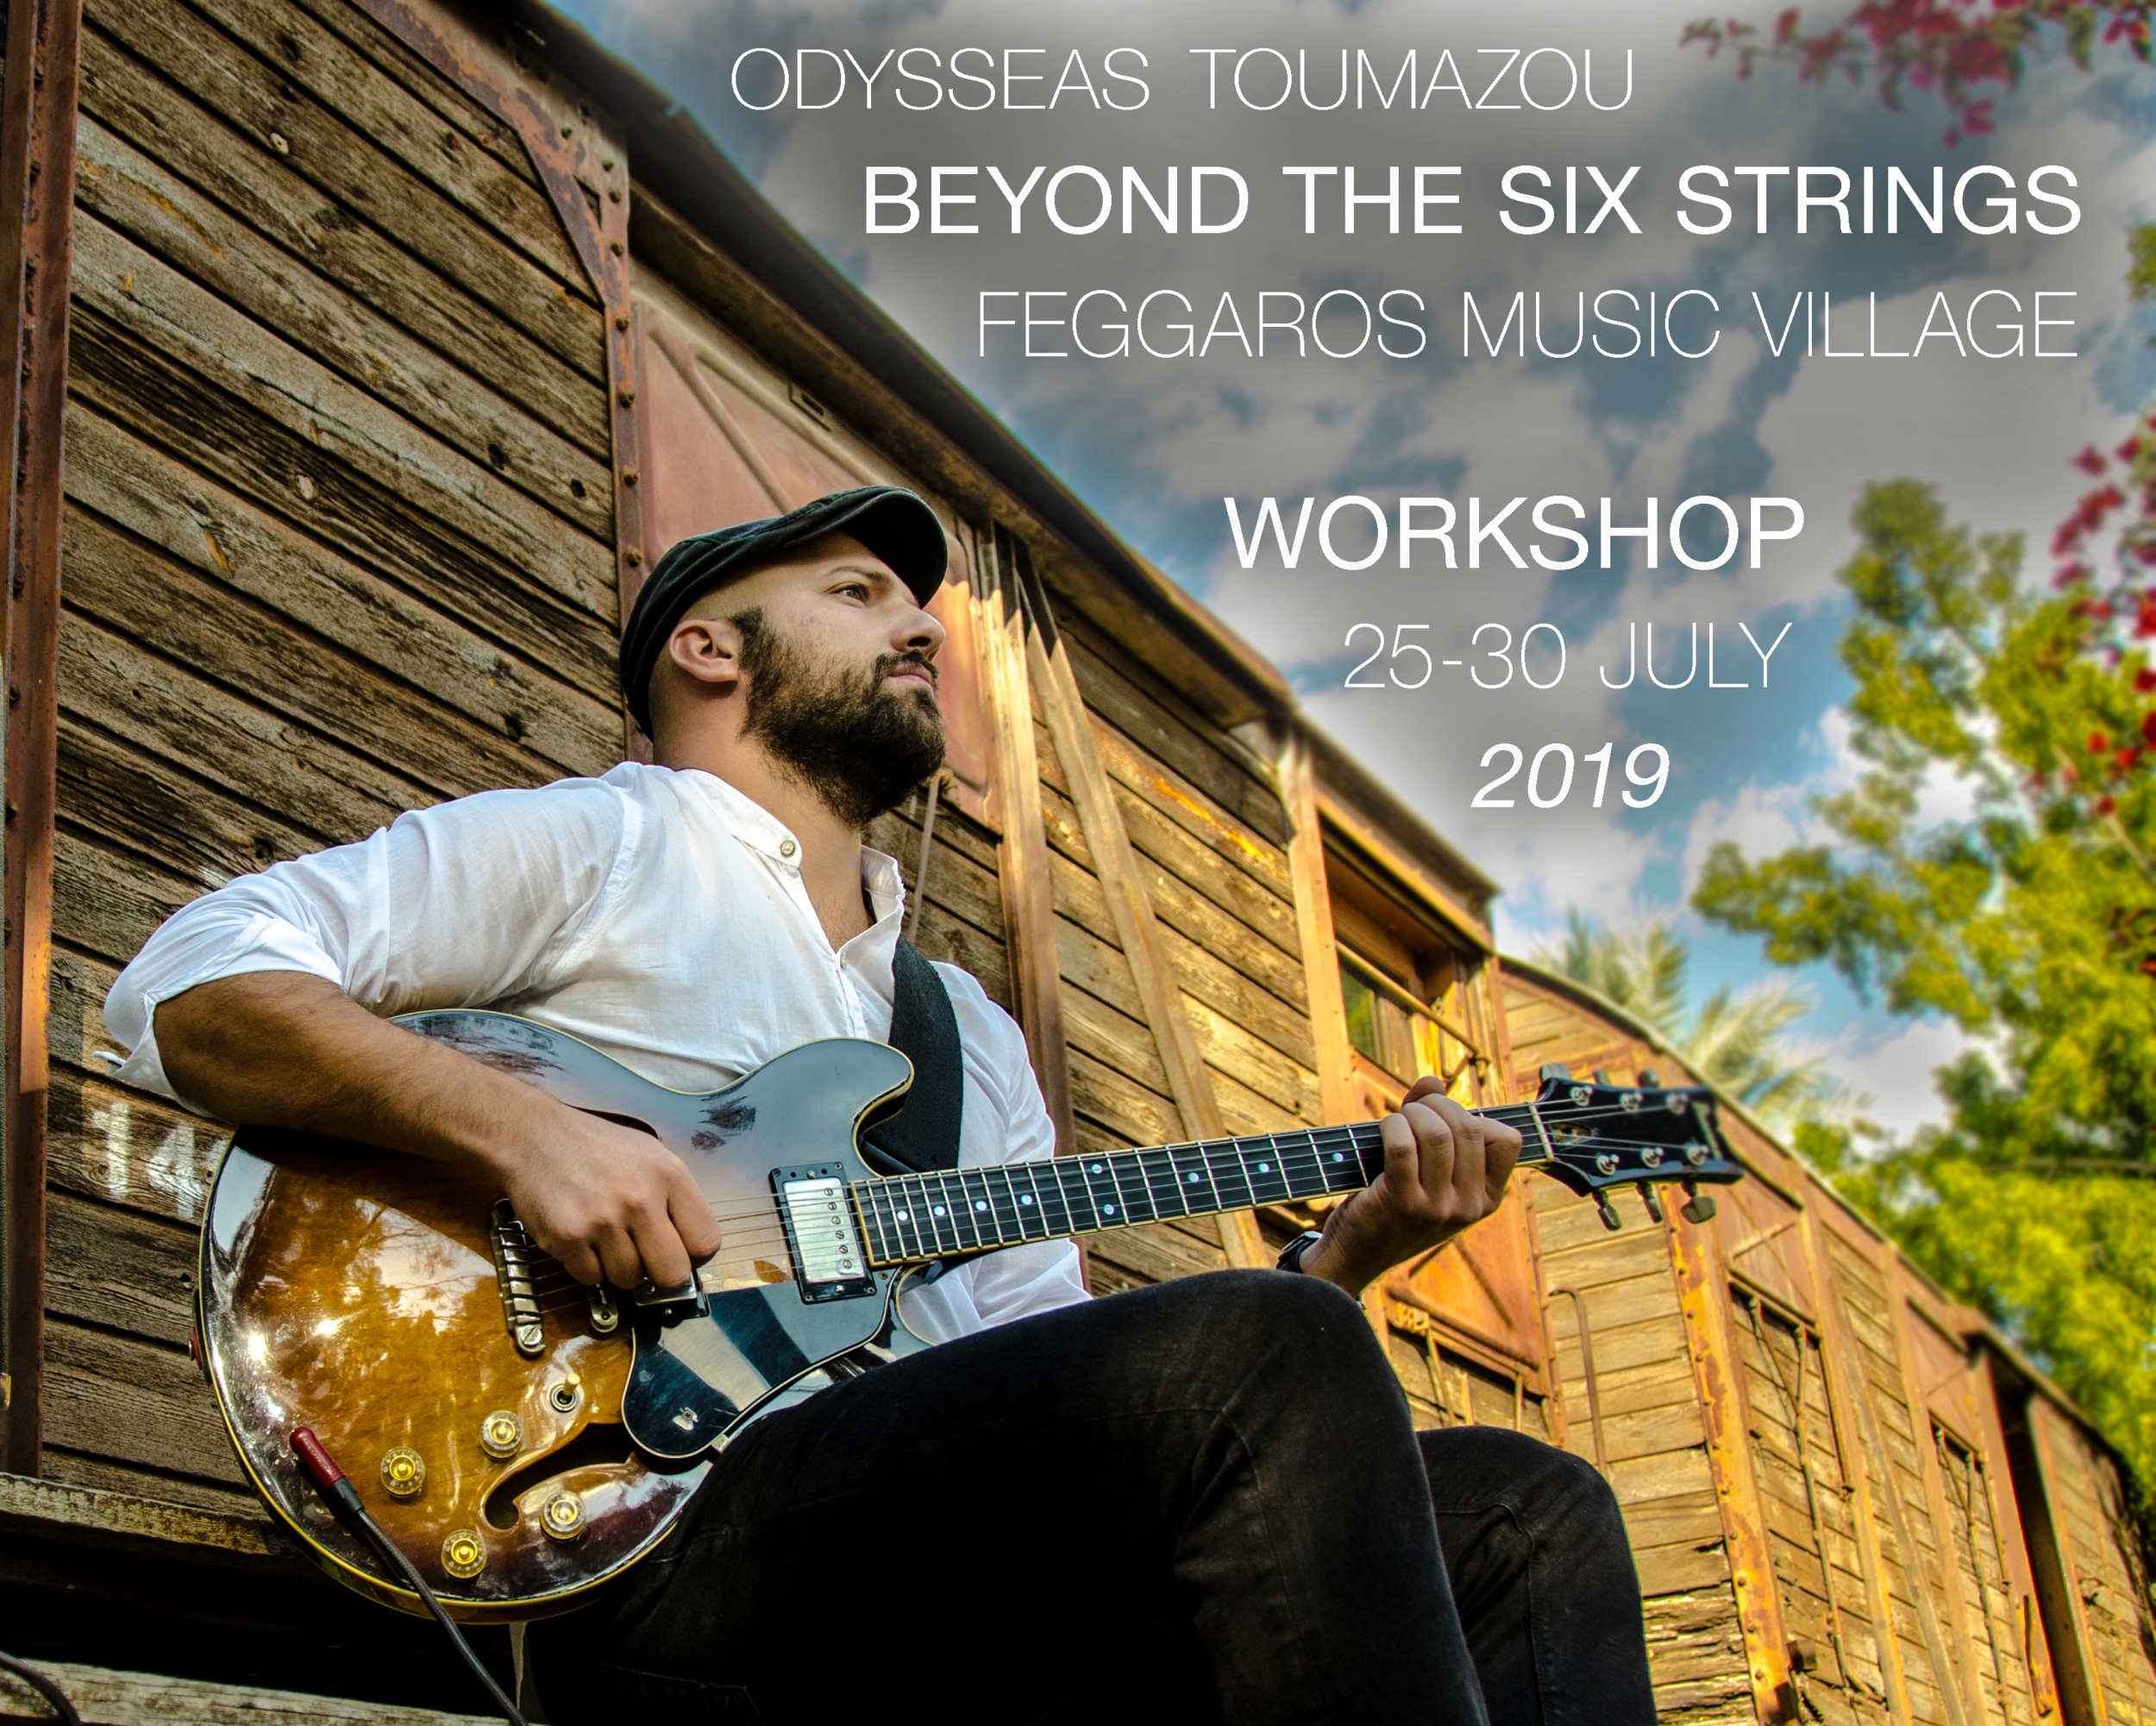 Beyond The Six Strings.  Guitar has been the most popular instrument in the last century but Its construction as an instrument has many limitations but at the same time those limitations give us the sound we all love. What are those limitations? How do we break them down and master them? If you listen to 50 great guitar players, you will hear 50 different ways to play.   My workshop's goal is for the students to explore and discover their own unique way of playing.   Together we will explore hand movement (kinesiology), the visual aspect (playing horizontally, vertically, diagonally), listening practice, solfege (Learning to LISTEN what you see, and to SEE what you listen). Explore traditional and contemporary techniques, (sound - using the fingers productively and using amplifier/effects and pedals) We will expand our knowledge in melodic, harmonic and rhythmic vocabulary and we will go in depth in timing and improvisation. Additionally, through the workshop we will discover a wide range of musical styles and we will deal with the creative practice of all the techniques mentioned above.